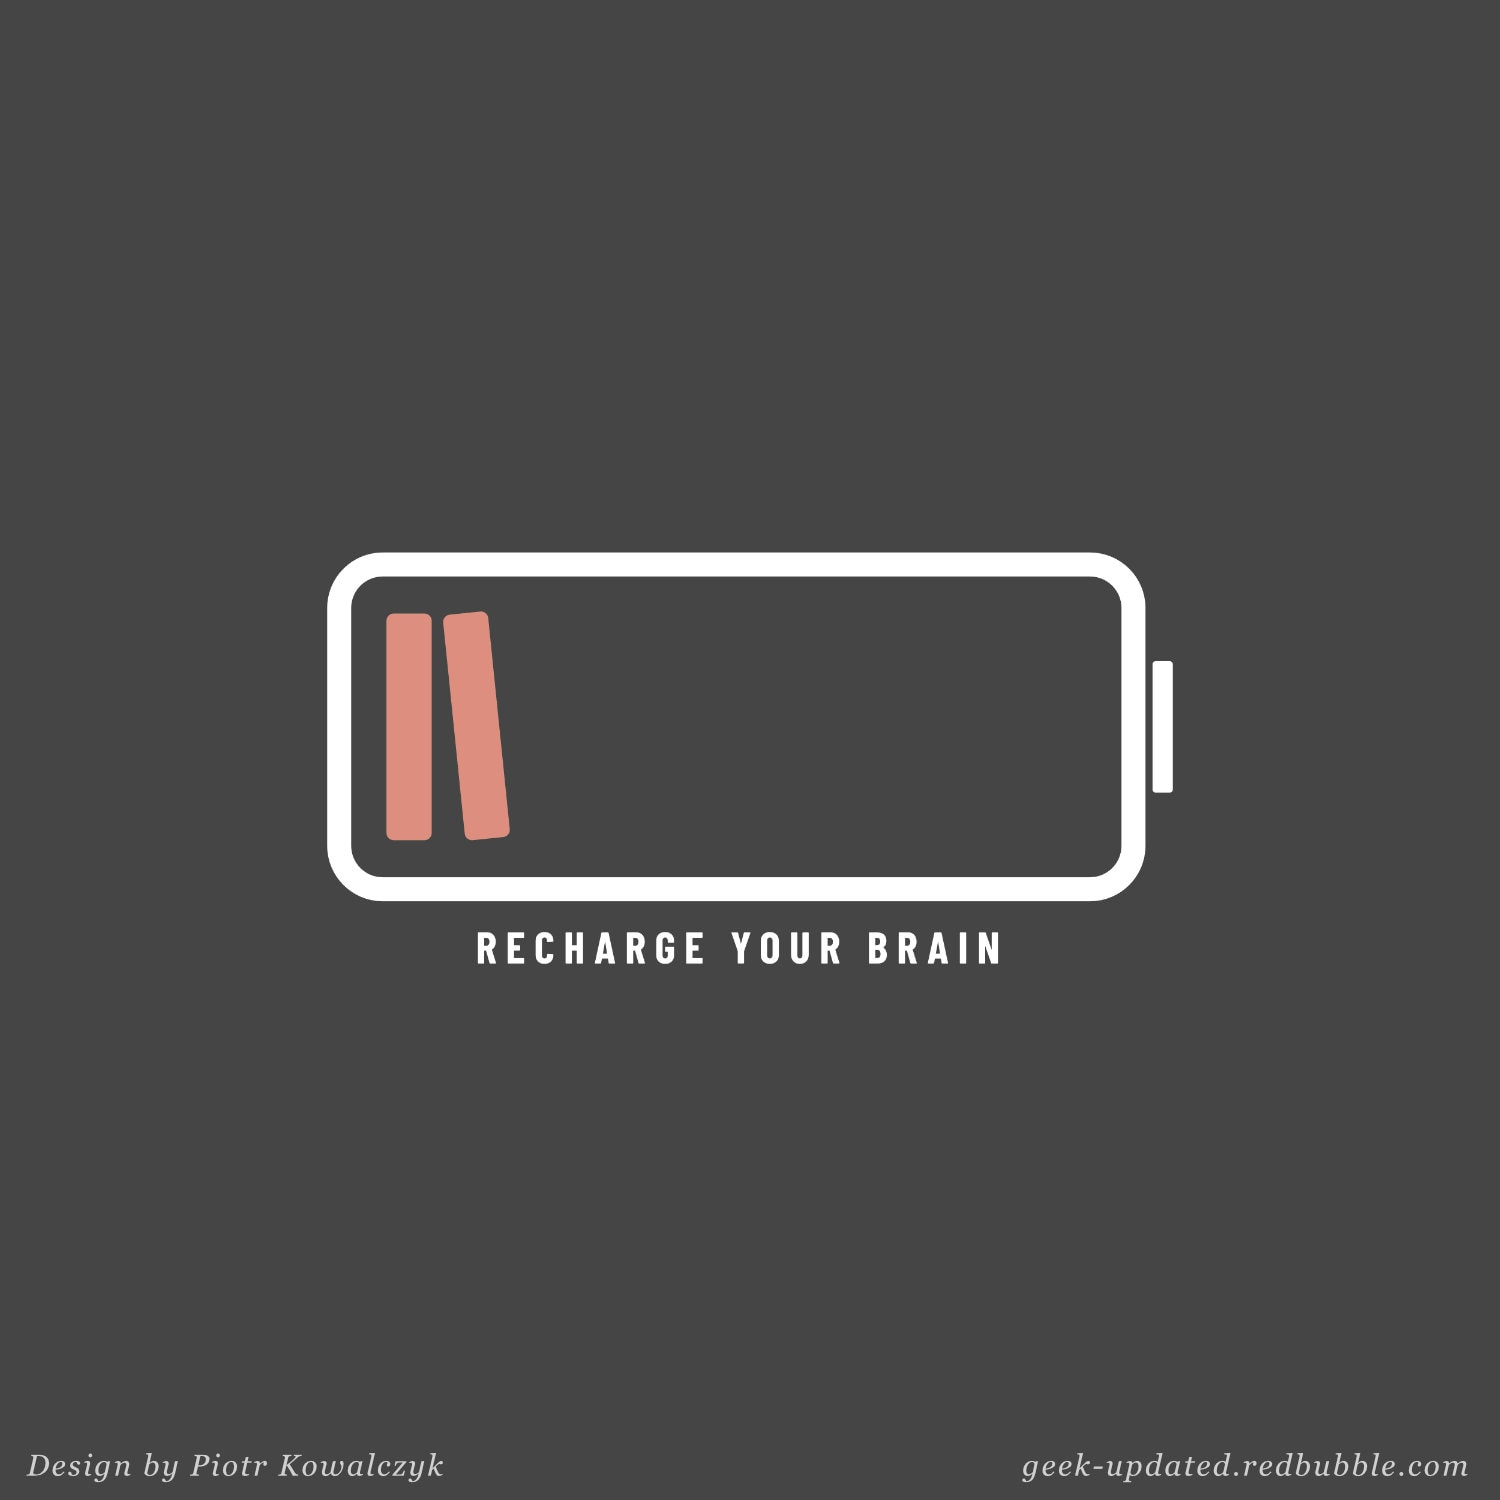 Recharge your brain with books poster by Piotr Kowalczyk